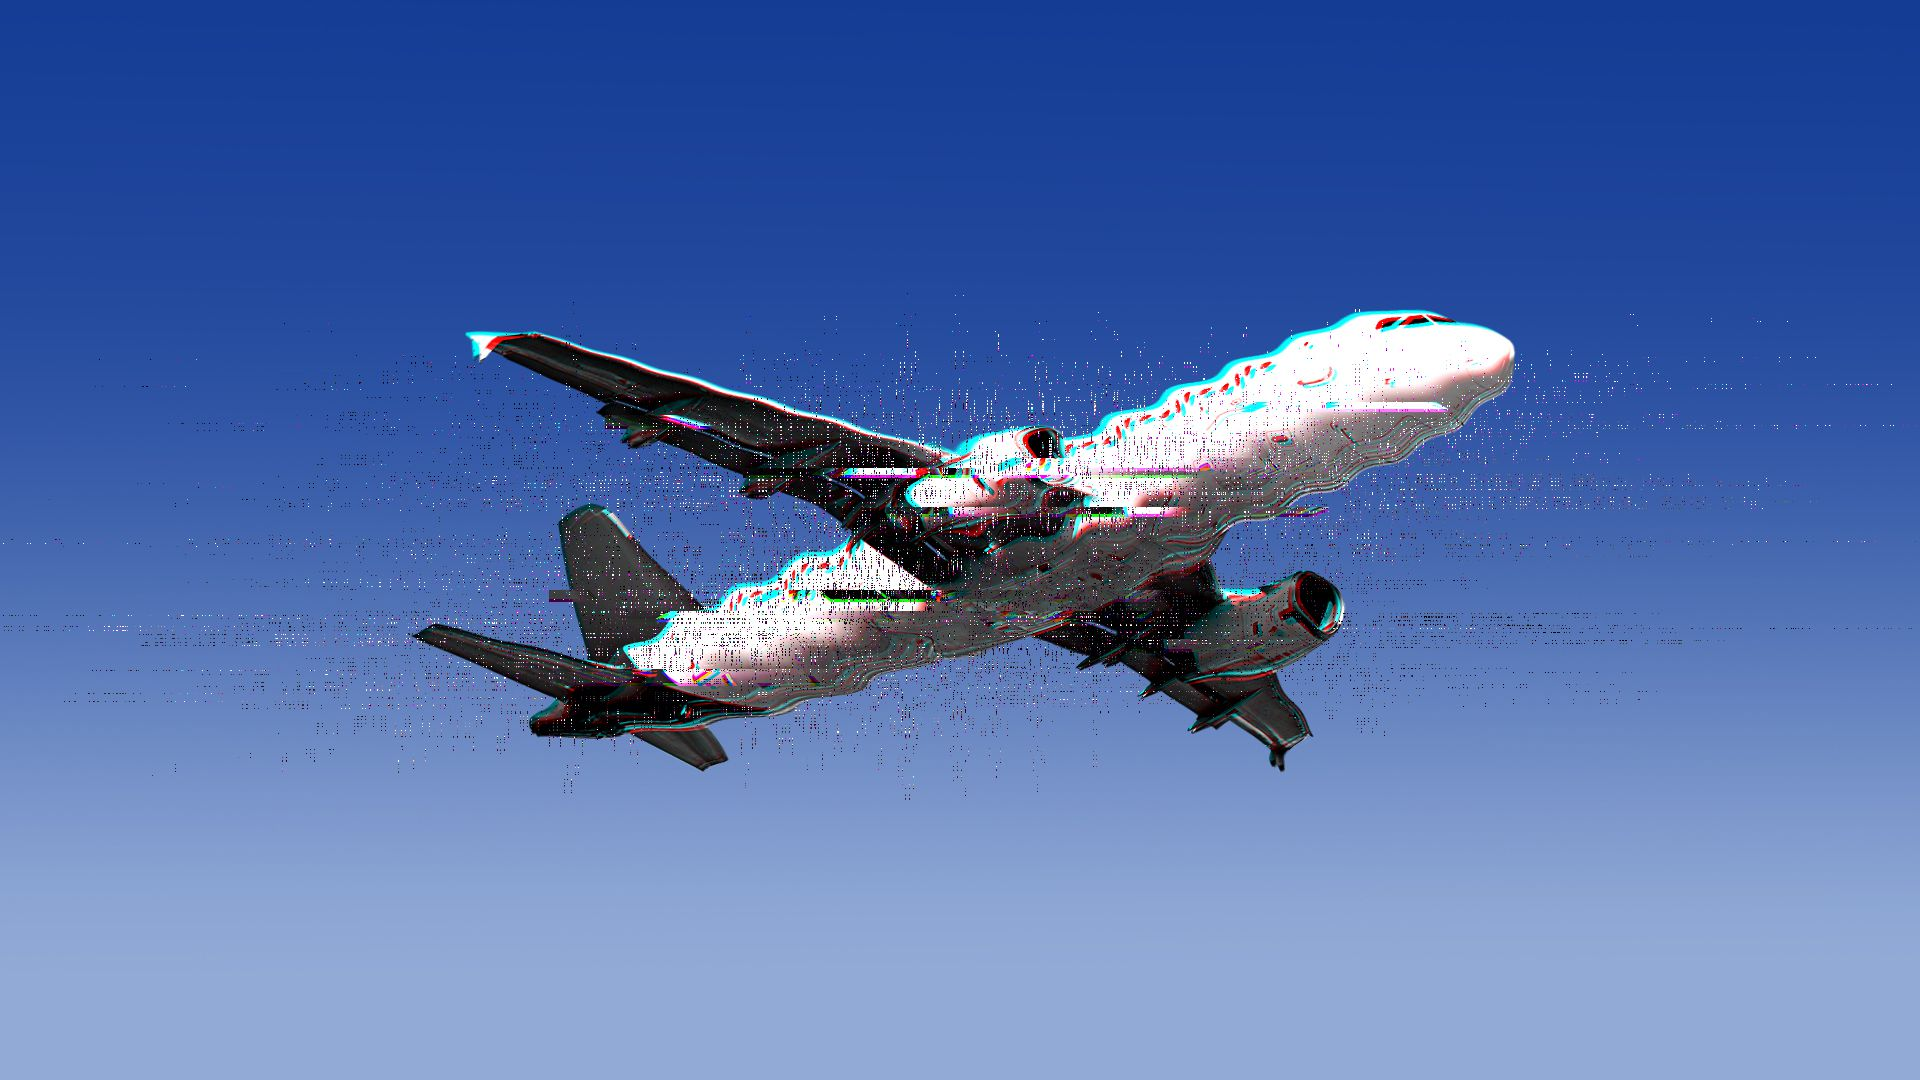 Illustration of a glitching airplane